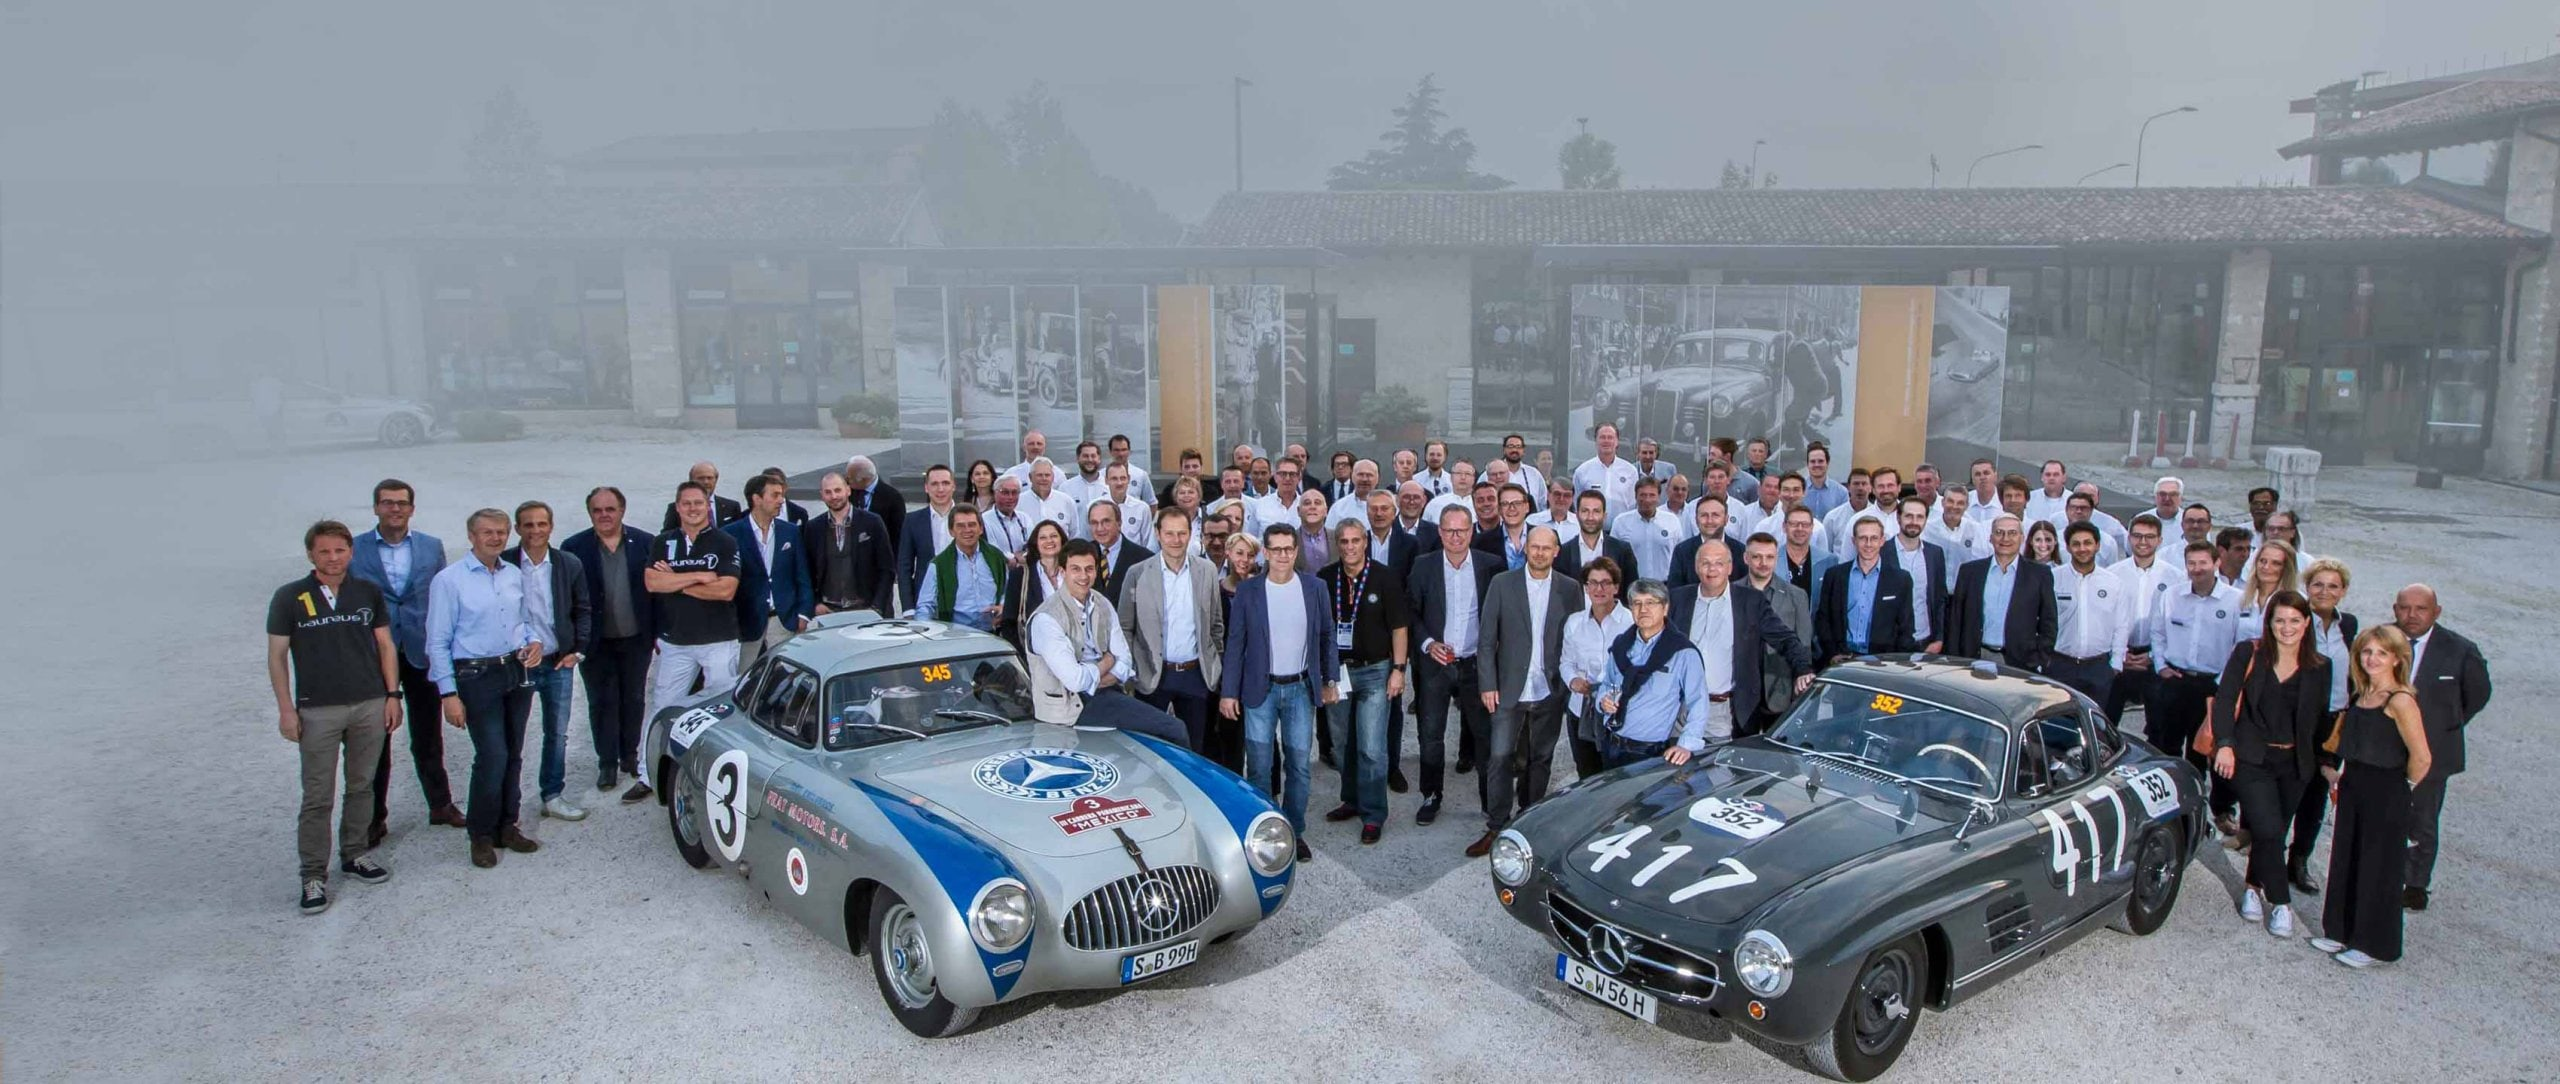 "1000 Miglia 2017: the Mercedes-Benz Classic team with a Mercedes-Benz 300 SL racing sports car (W 194, left) and a 300 SL ""Gullwing"" Coupé (W 198), 17 May 2017."